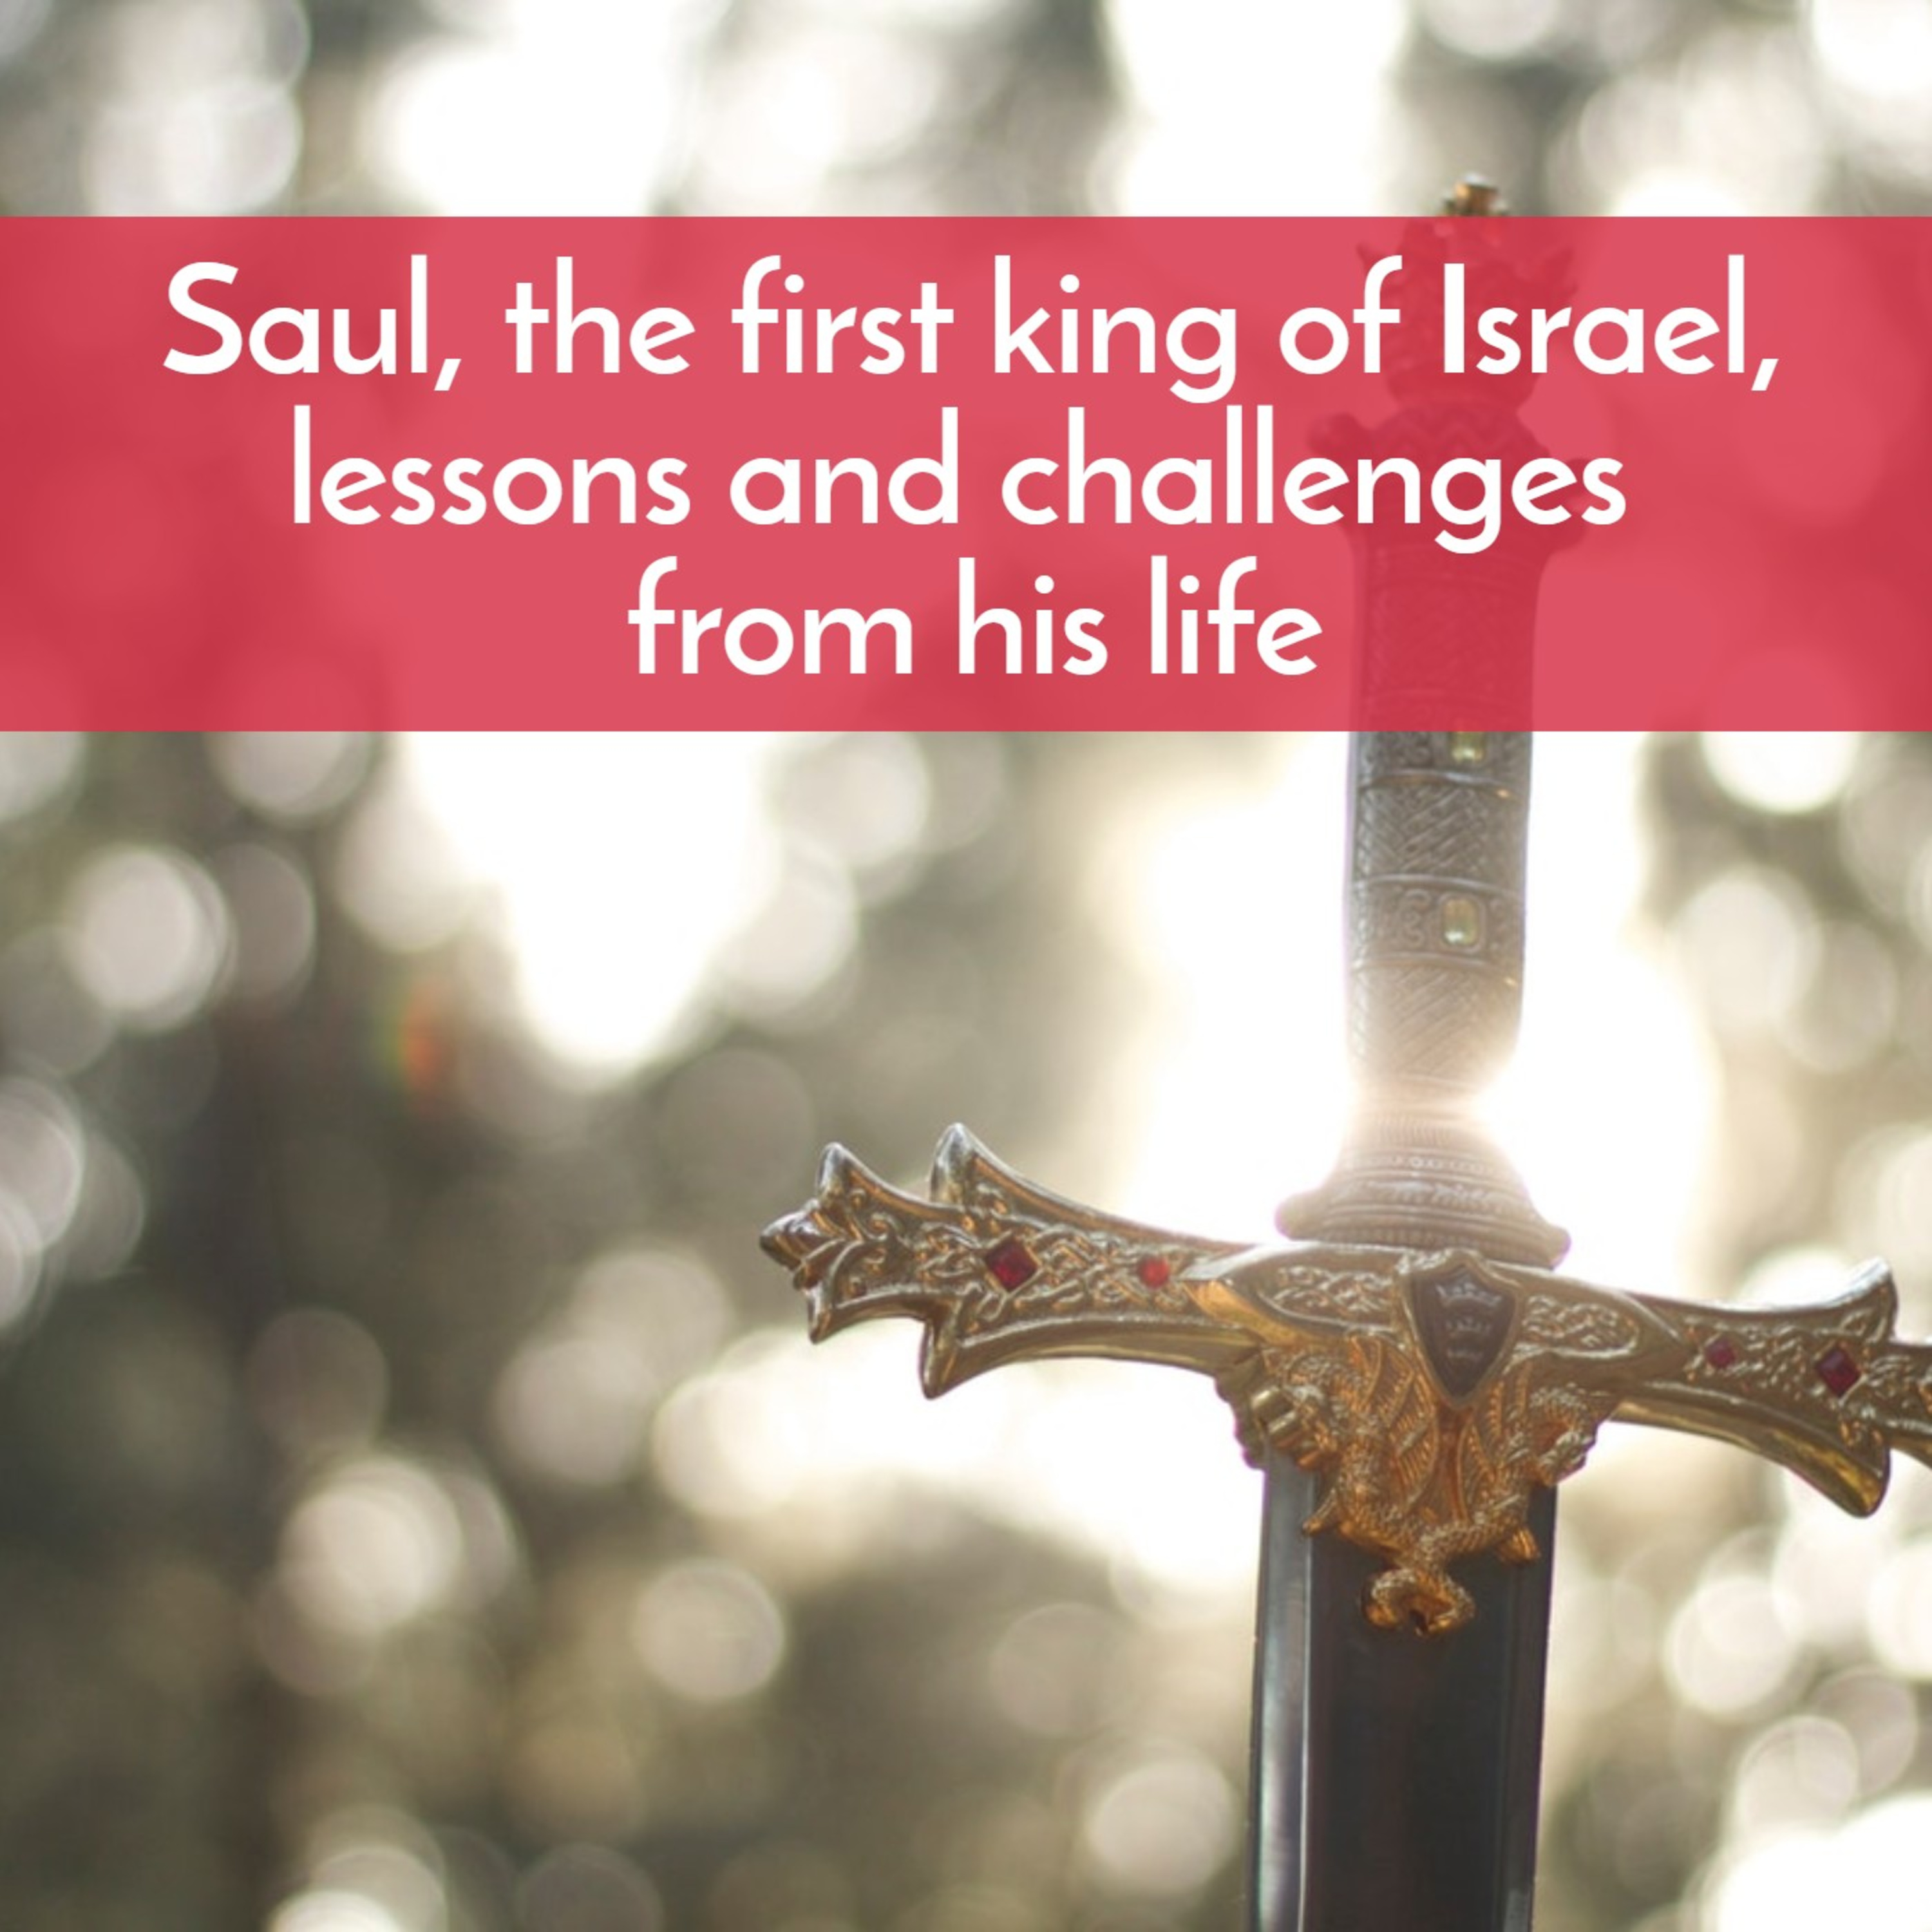 Saul, the first king of Israel, lessons and challenges from his life